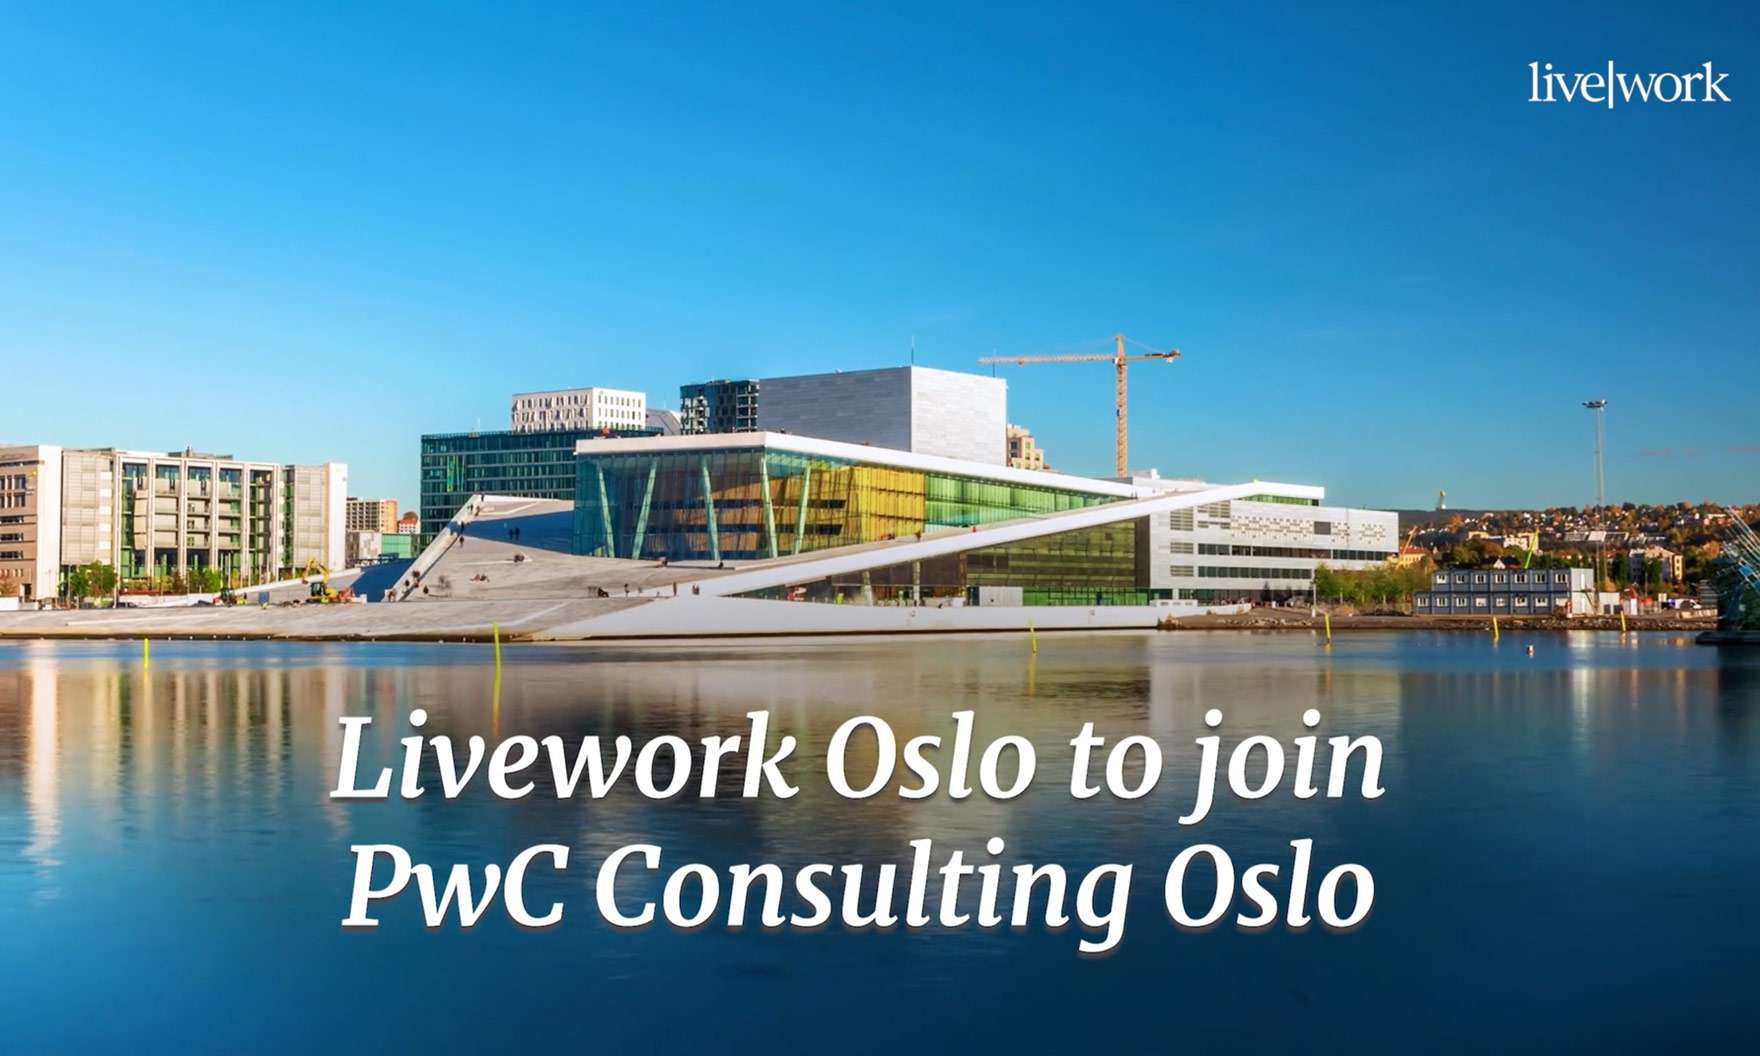 Big news! Livework Oslo joins PwC Consulting Oslo. Livework Group strengthens its independent growth potential.